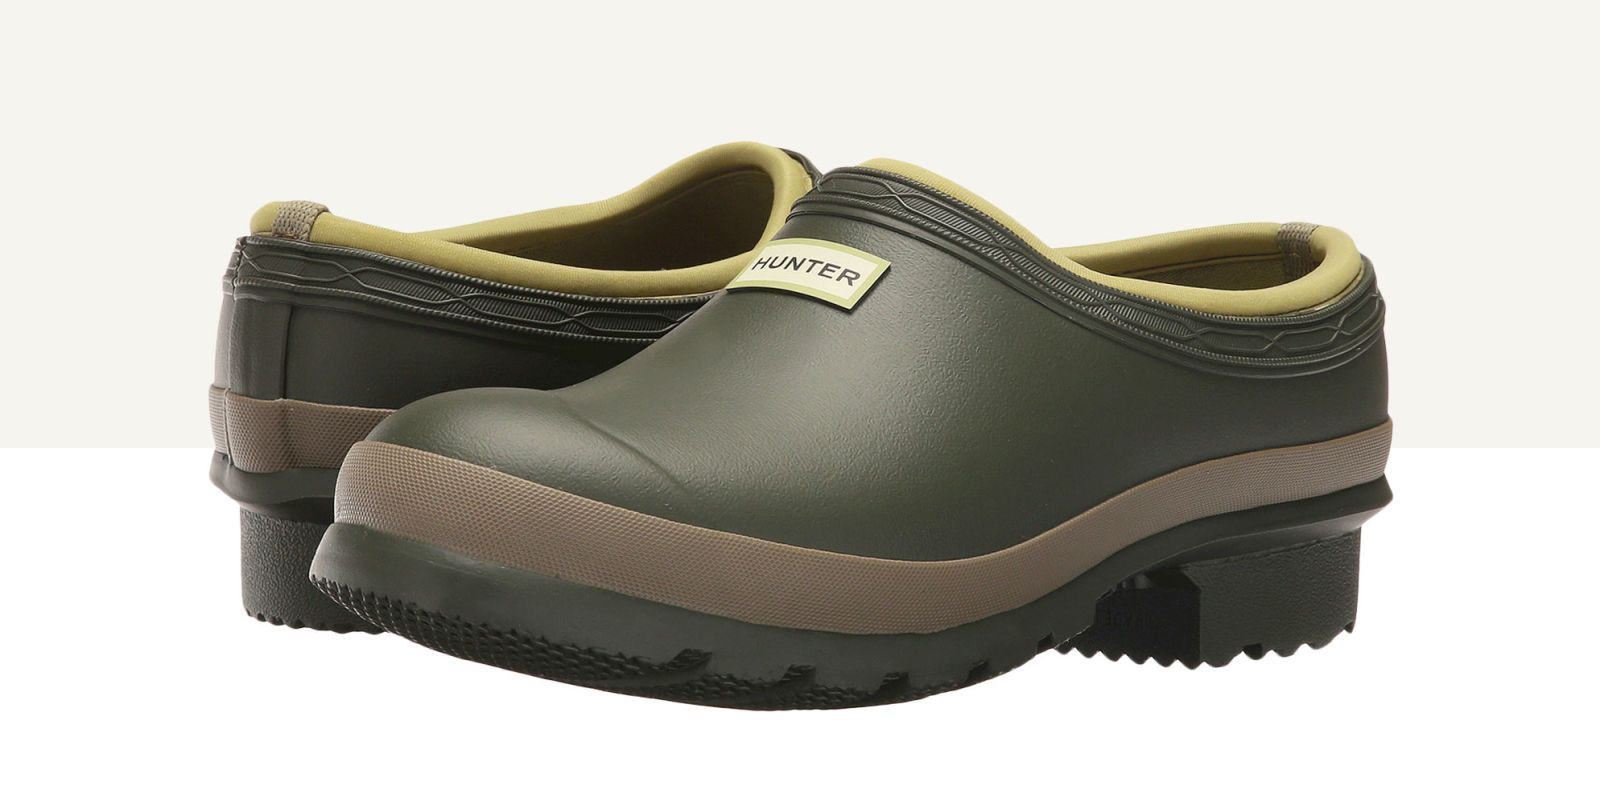 10 Gardening Shoes That Make Yard Work Less Of A Mess Best Products Gardening Shoes Water Resistant Shoes Garden Clogs